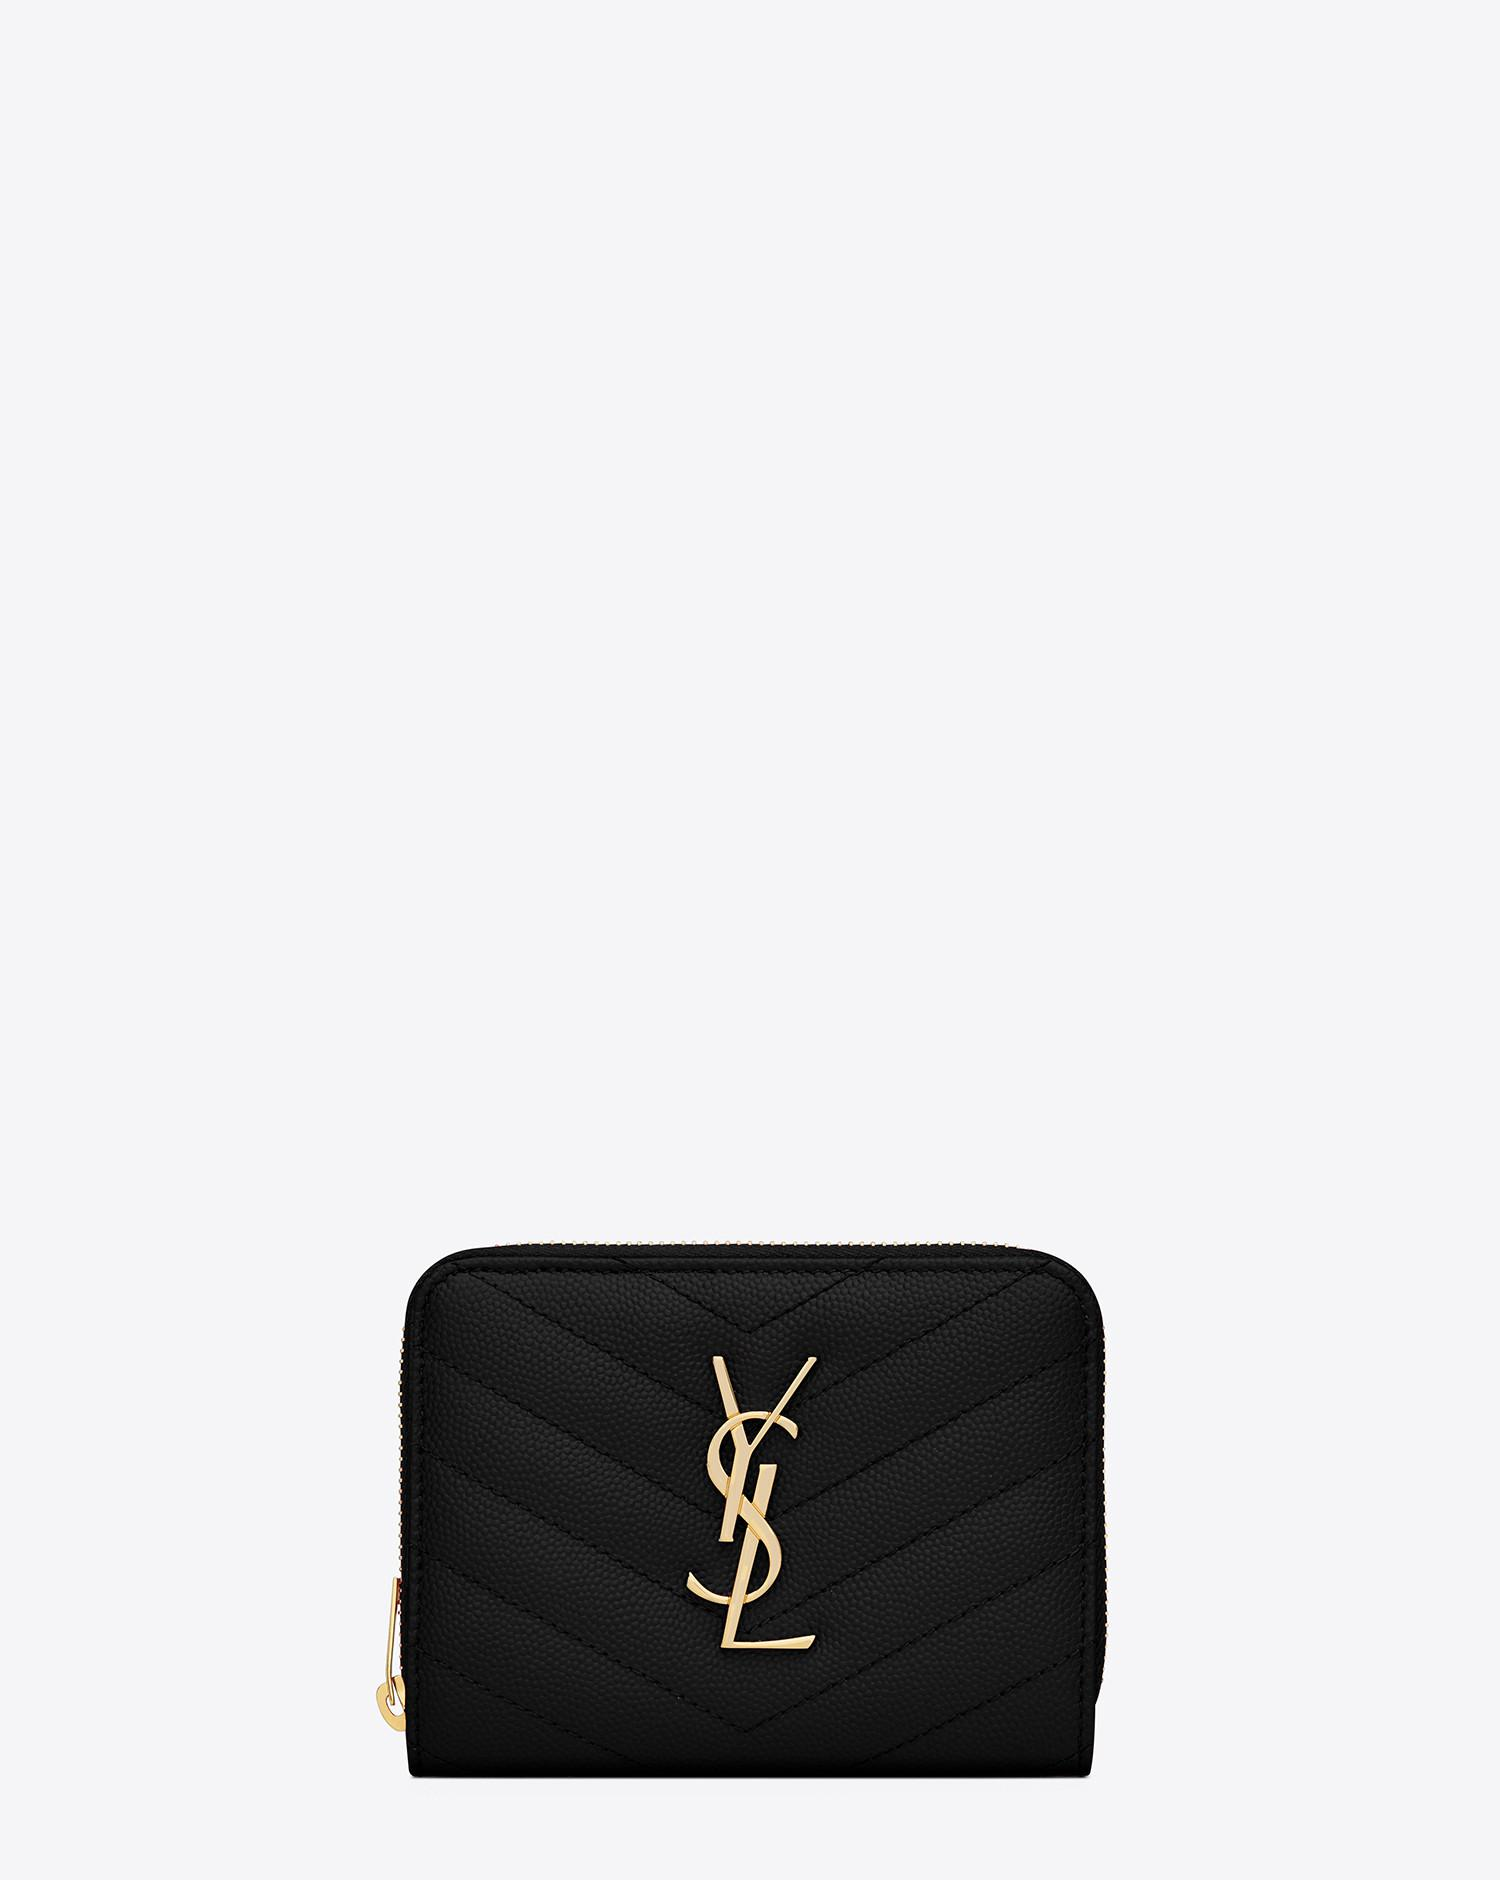 Saint Laurent - Black Monogram Compact Zip Around Wallet In Grain De Poudre  Embossed Leather -. View fullscreen 6ae5b35a08f7e